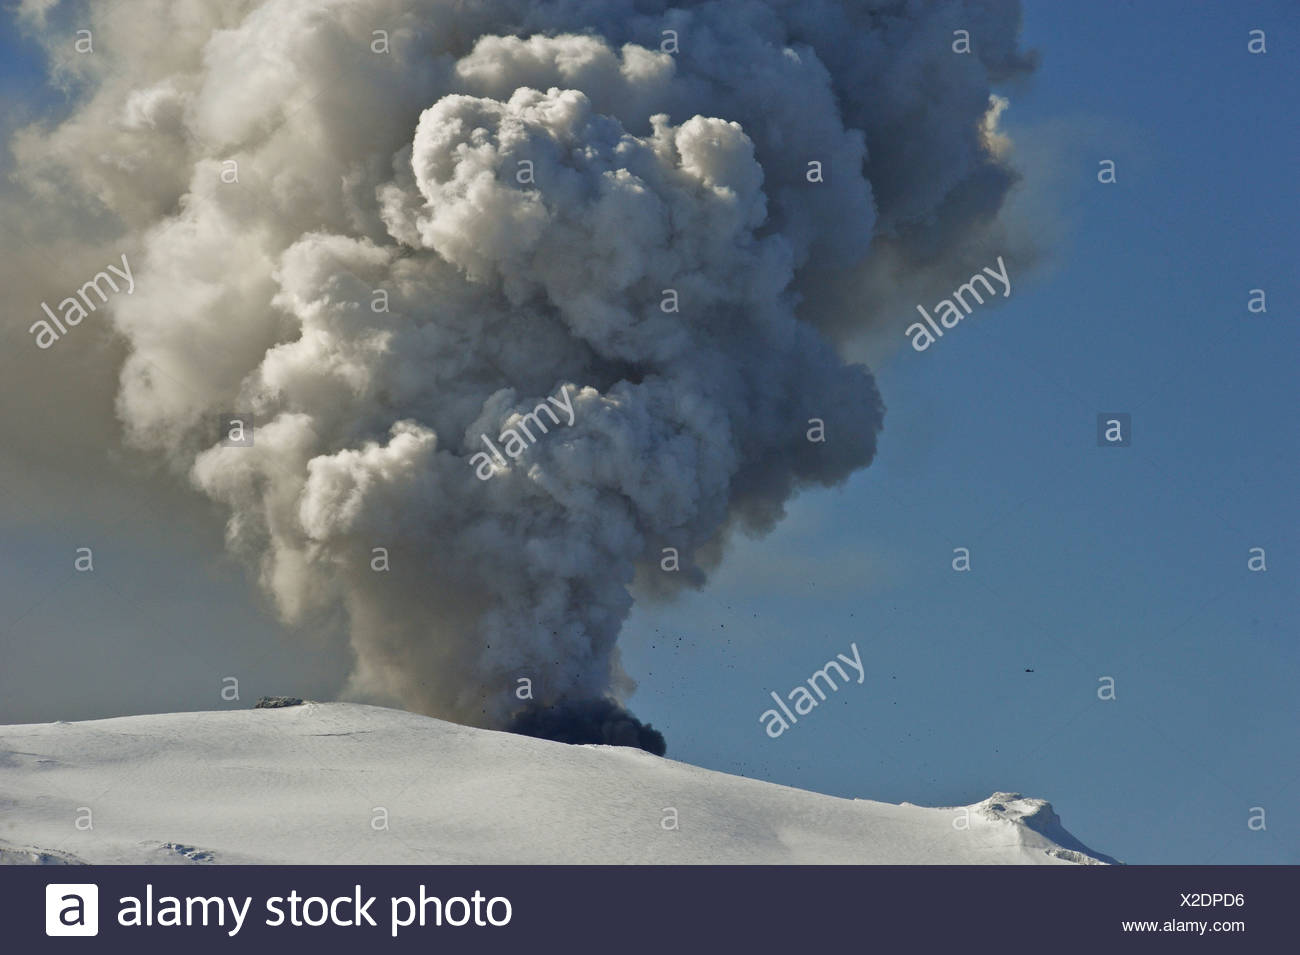 A helicopter flying in close proximity to the crater of Eyjafjallajoekull Volcano, while large lava bombs are being hurled into - Stock Image